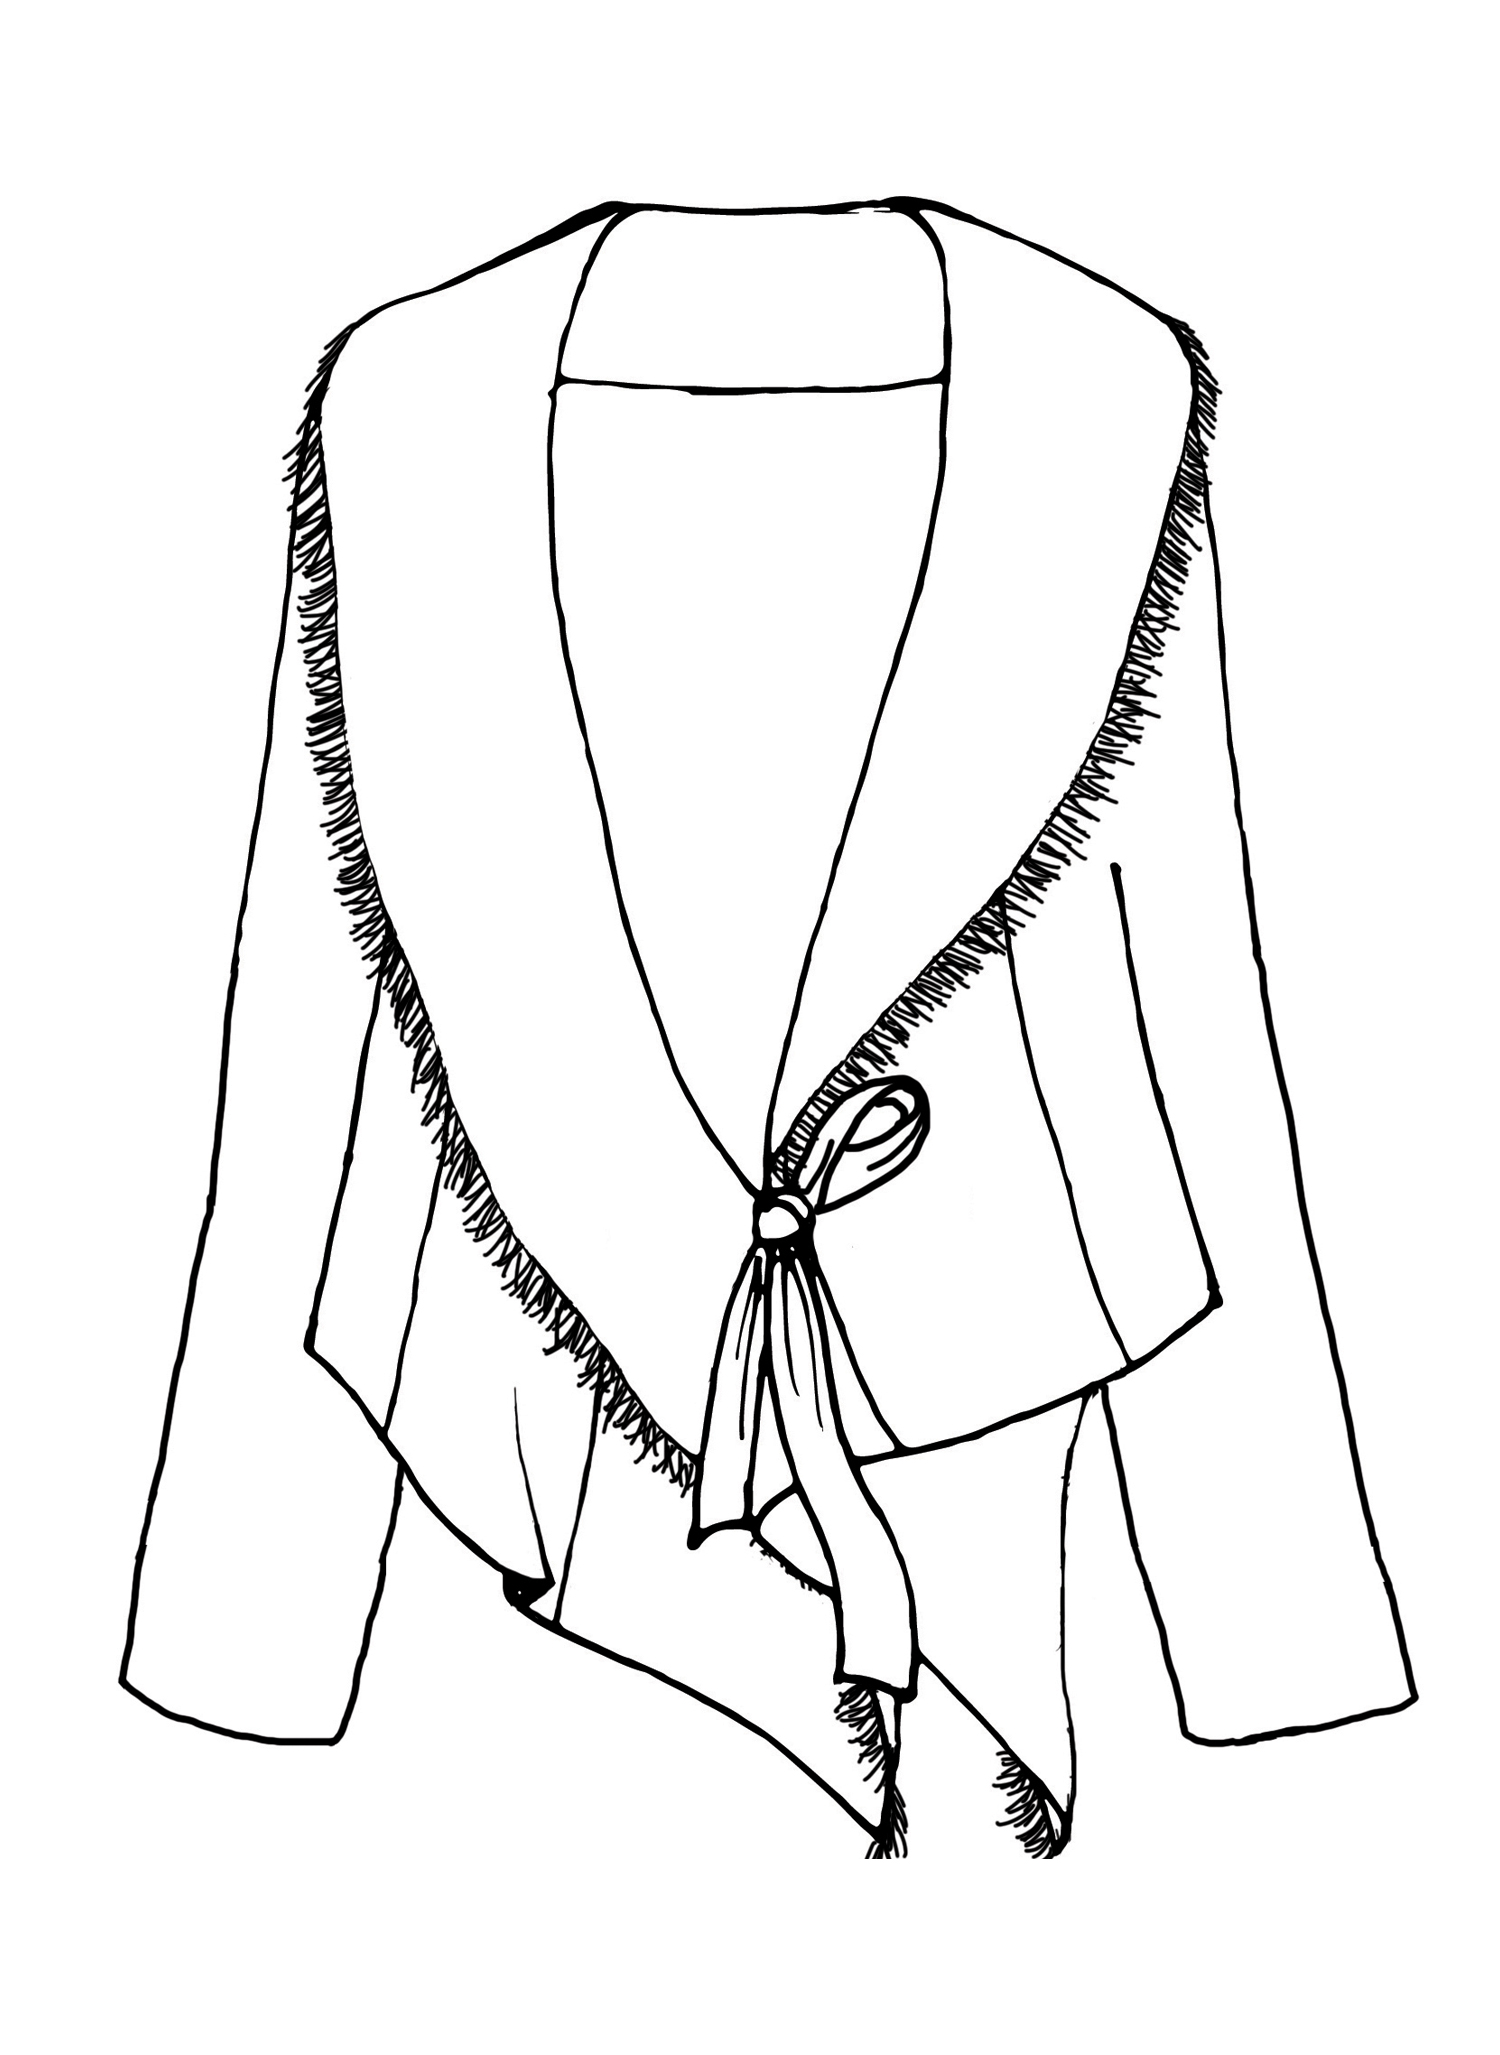 Draping Jacket sketch image